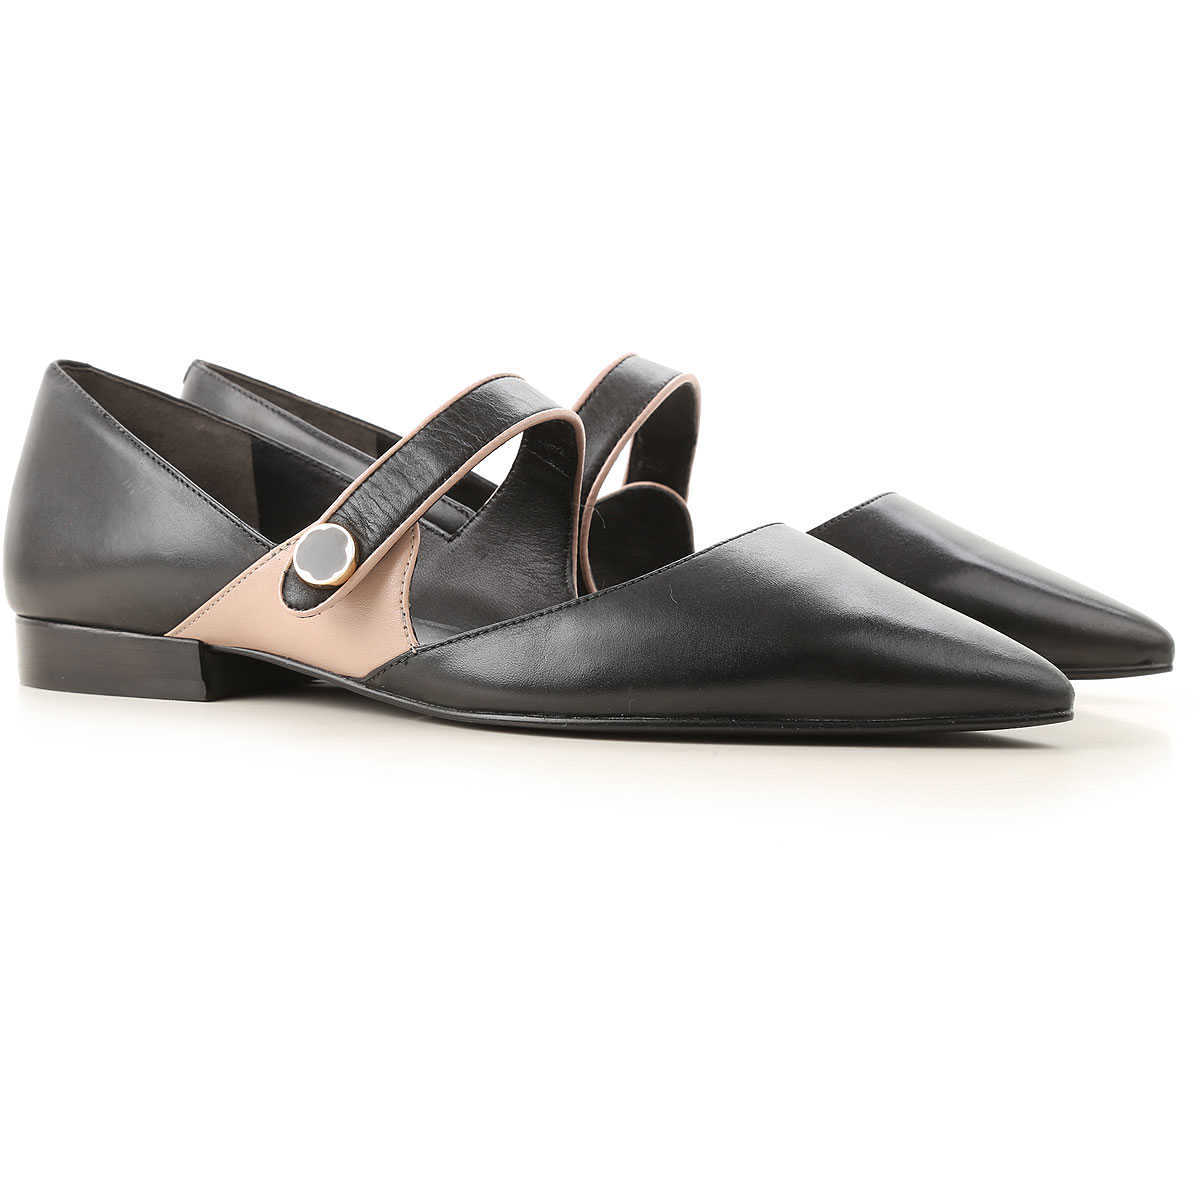 What For Ballet Flats Ballerina Shoes for Women Black Canada - GOOFASH - Womens BALLERINAS